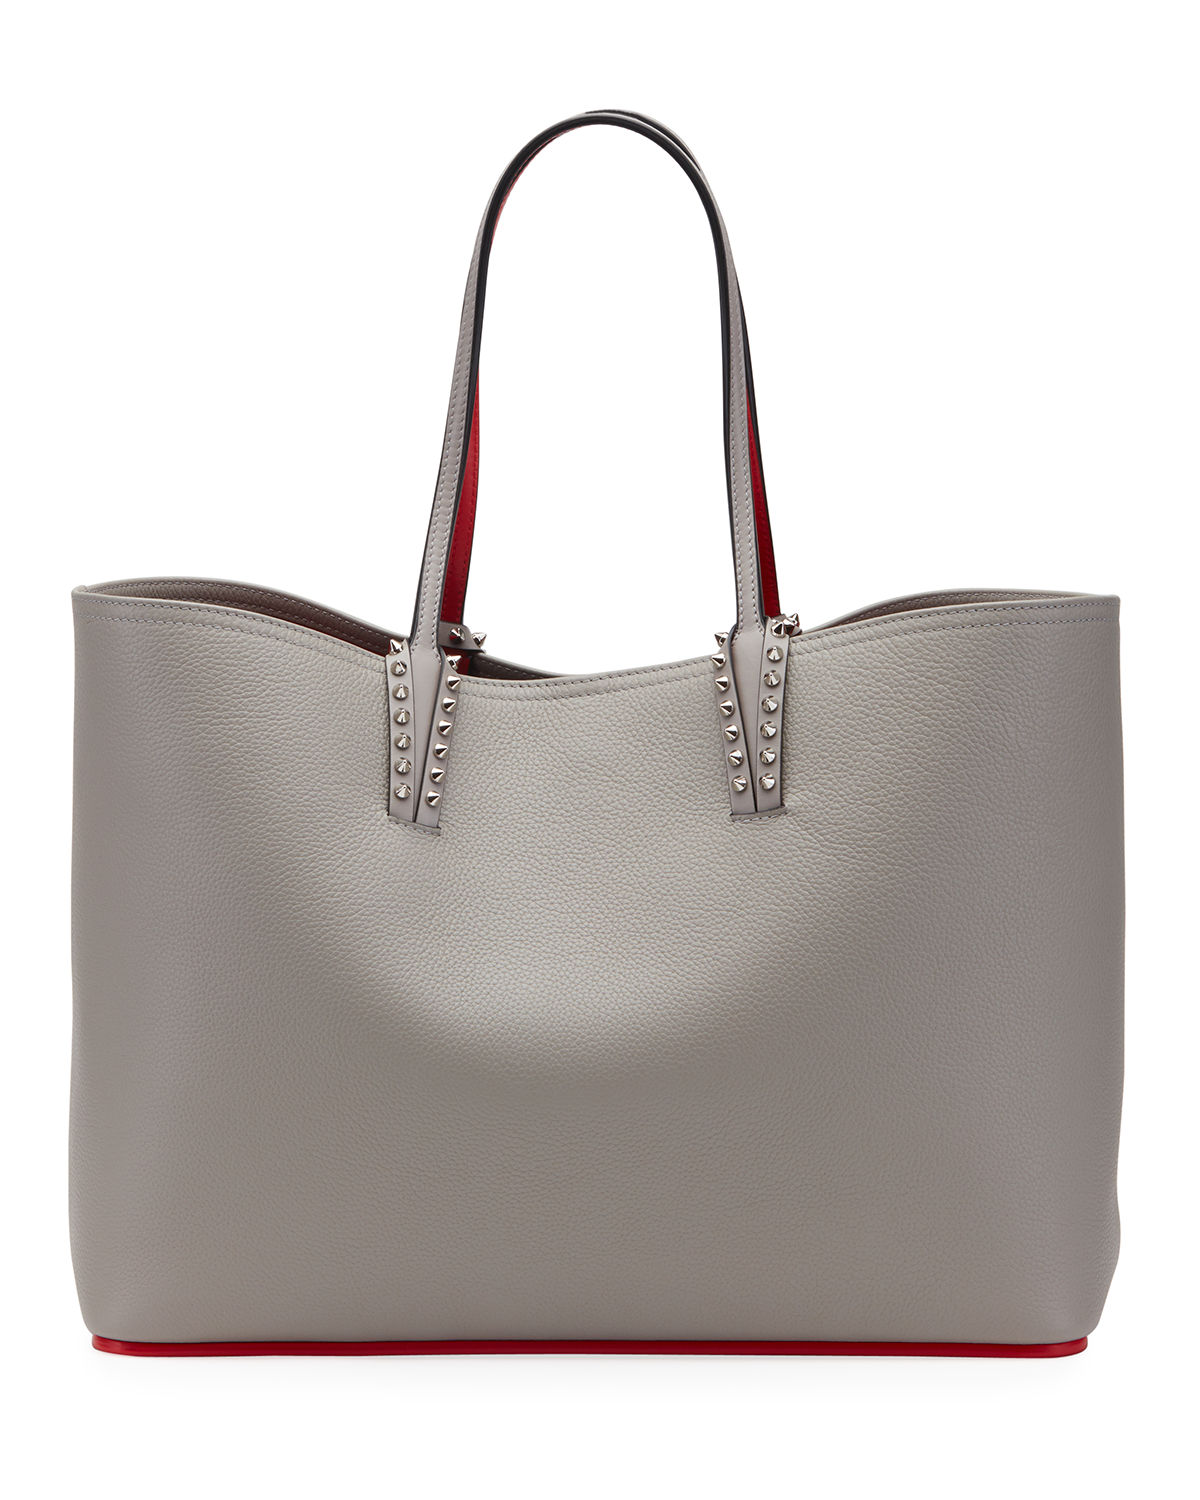 Christian Louboutin Totes Cabata East-West Leather Tote Bag